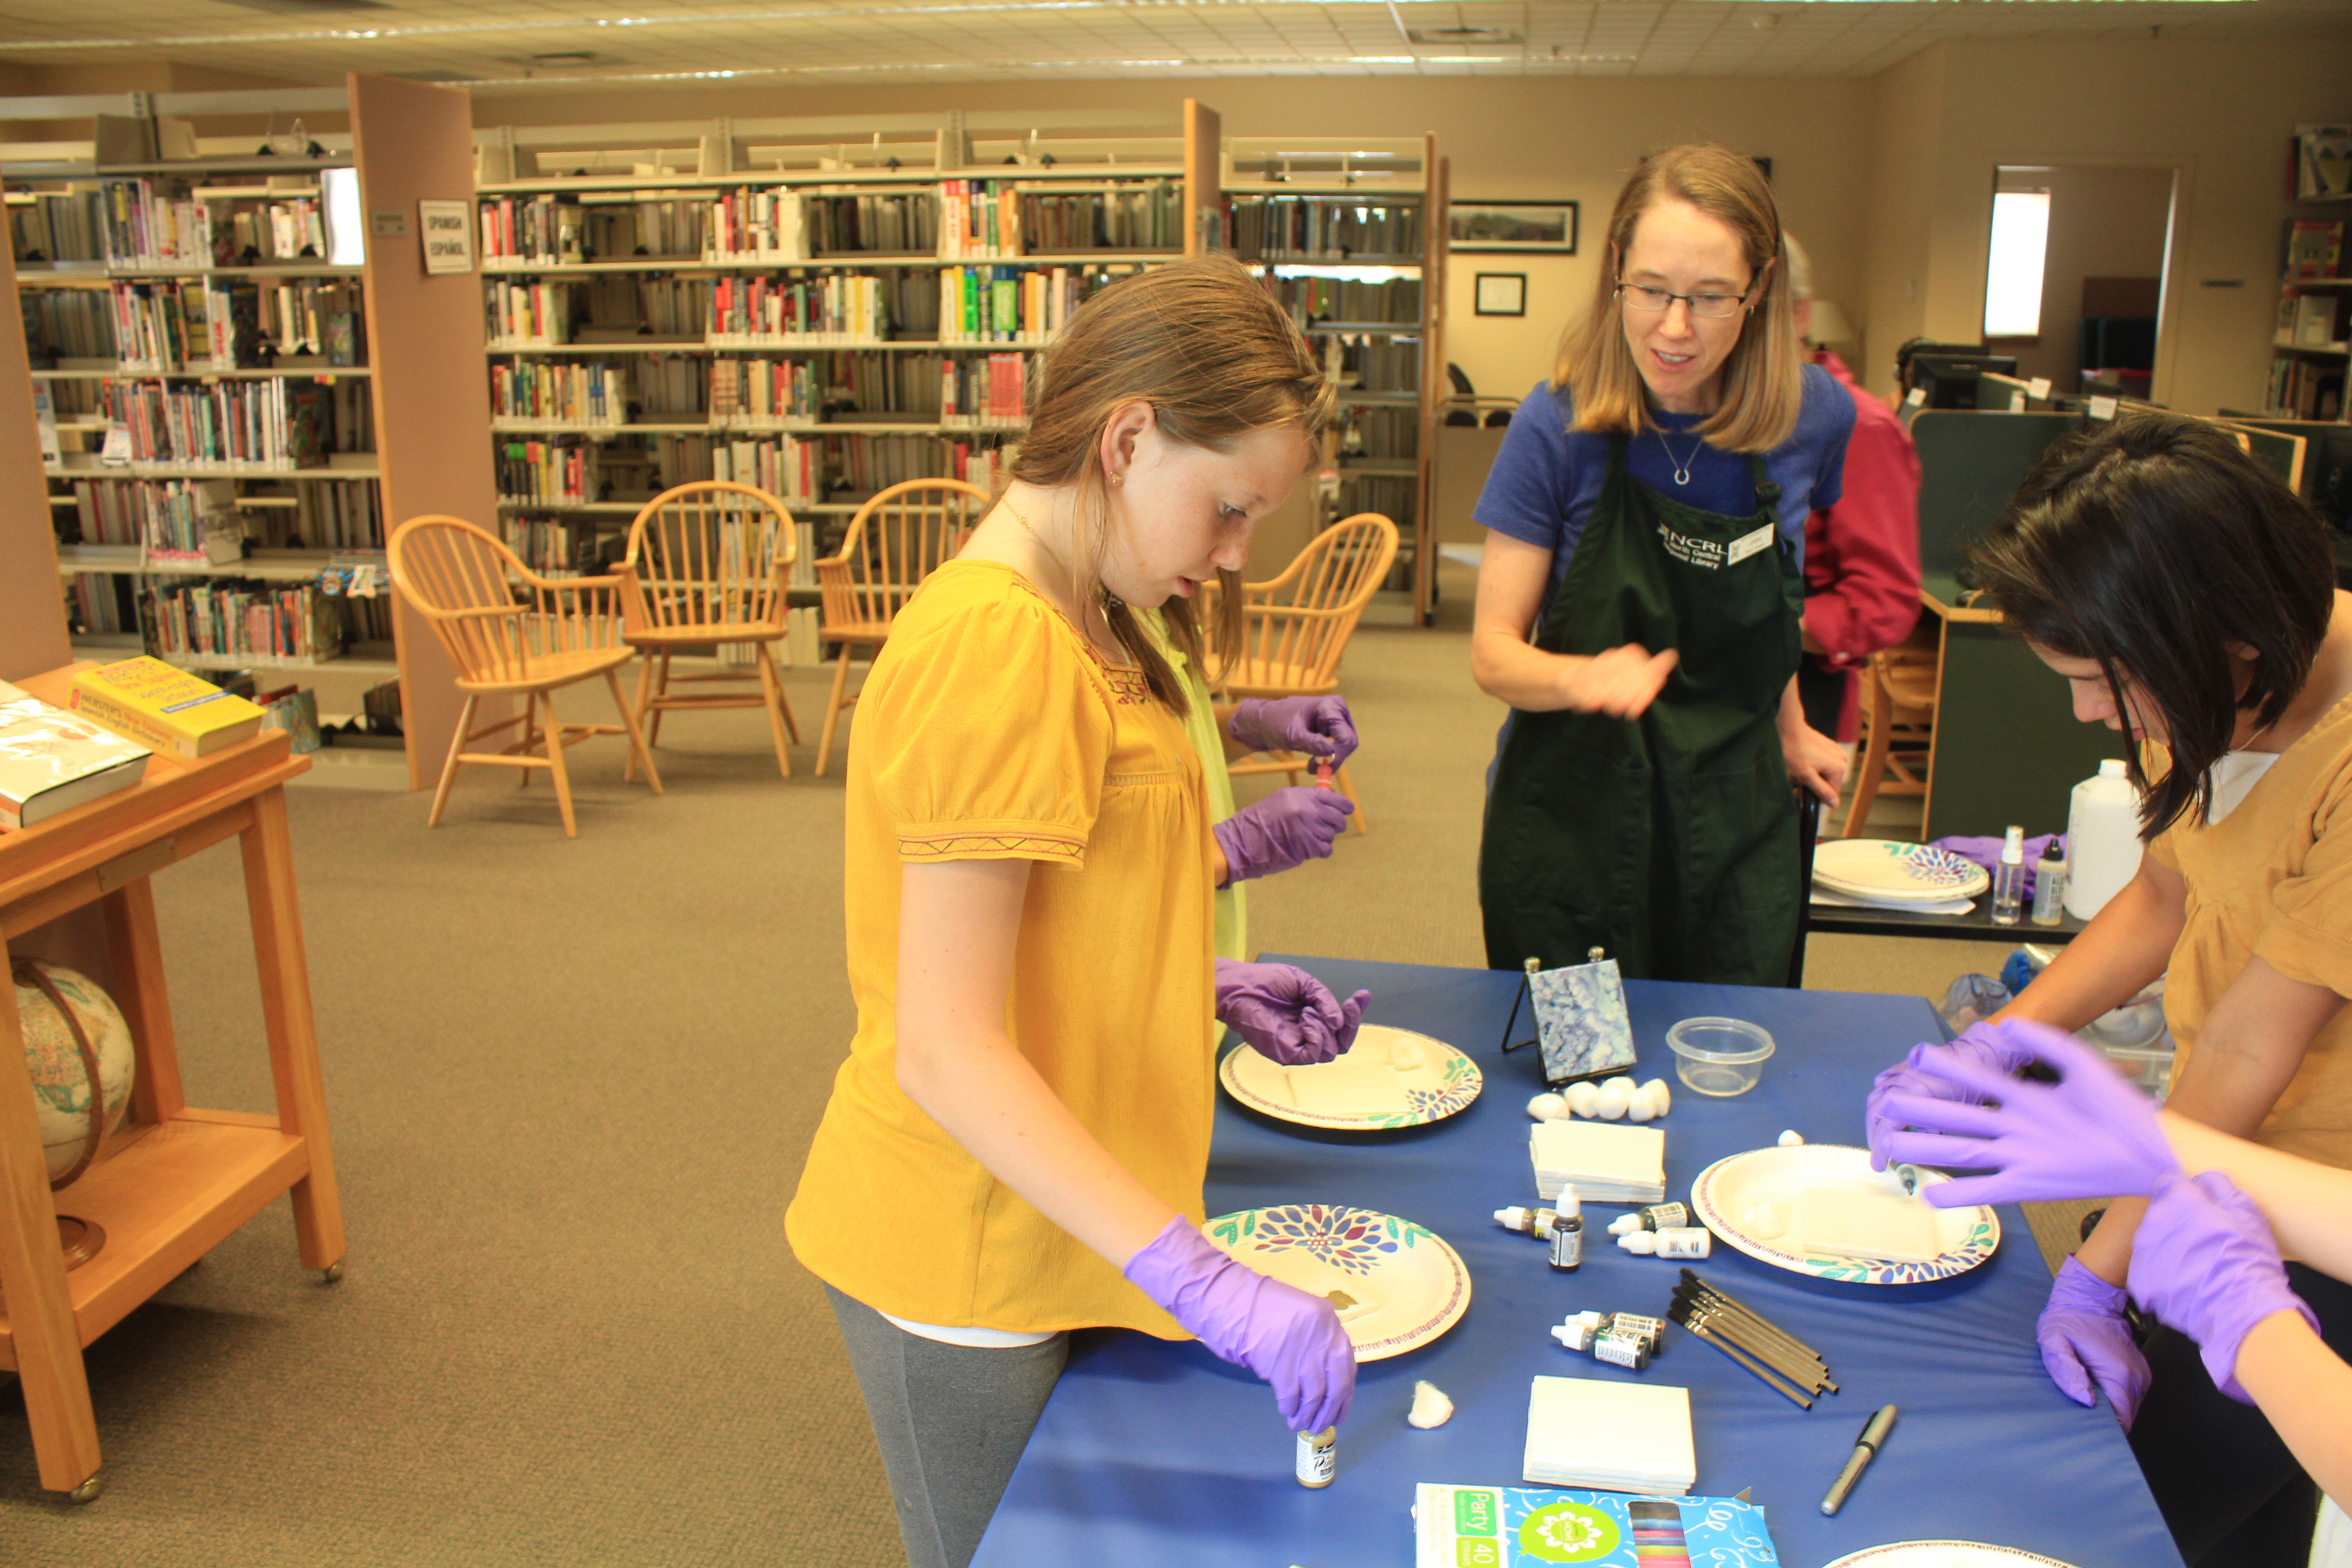 Librarian, Joanne Gembe, helps Adi Stimmel, age 13, and Celeste Villalobos, age 12, start the tile process.